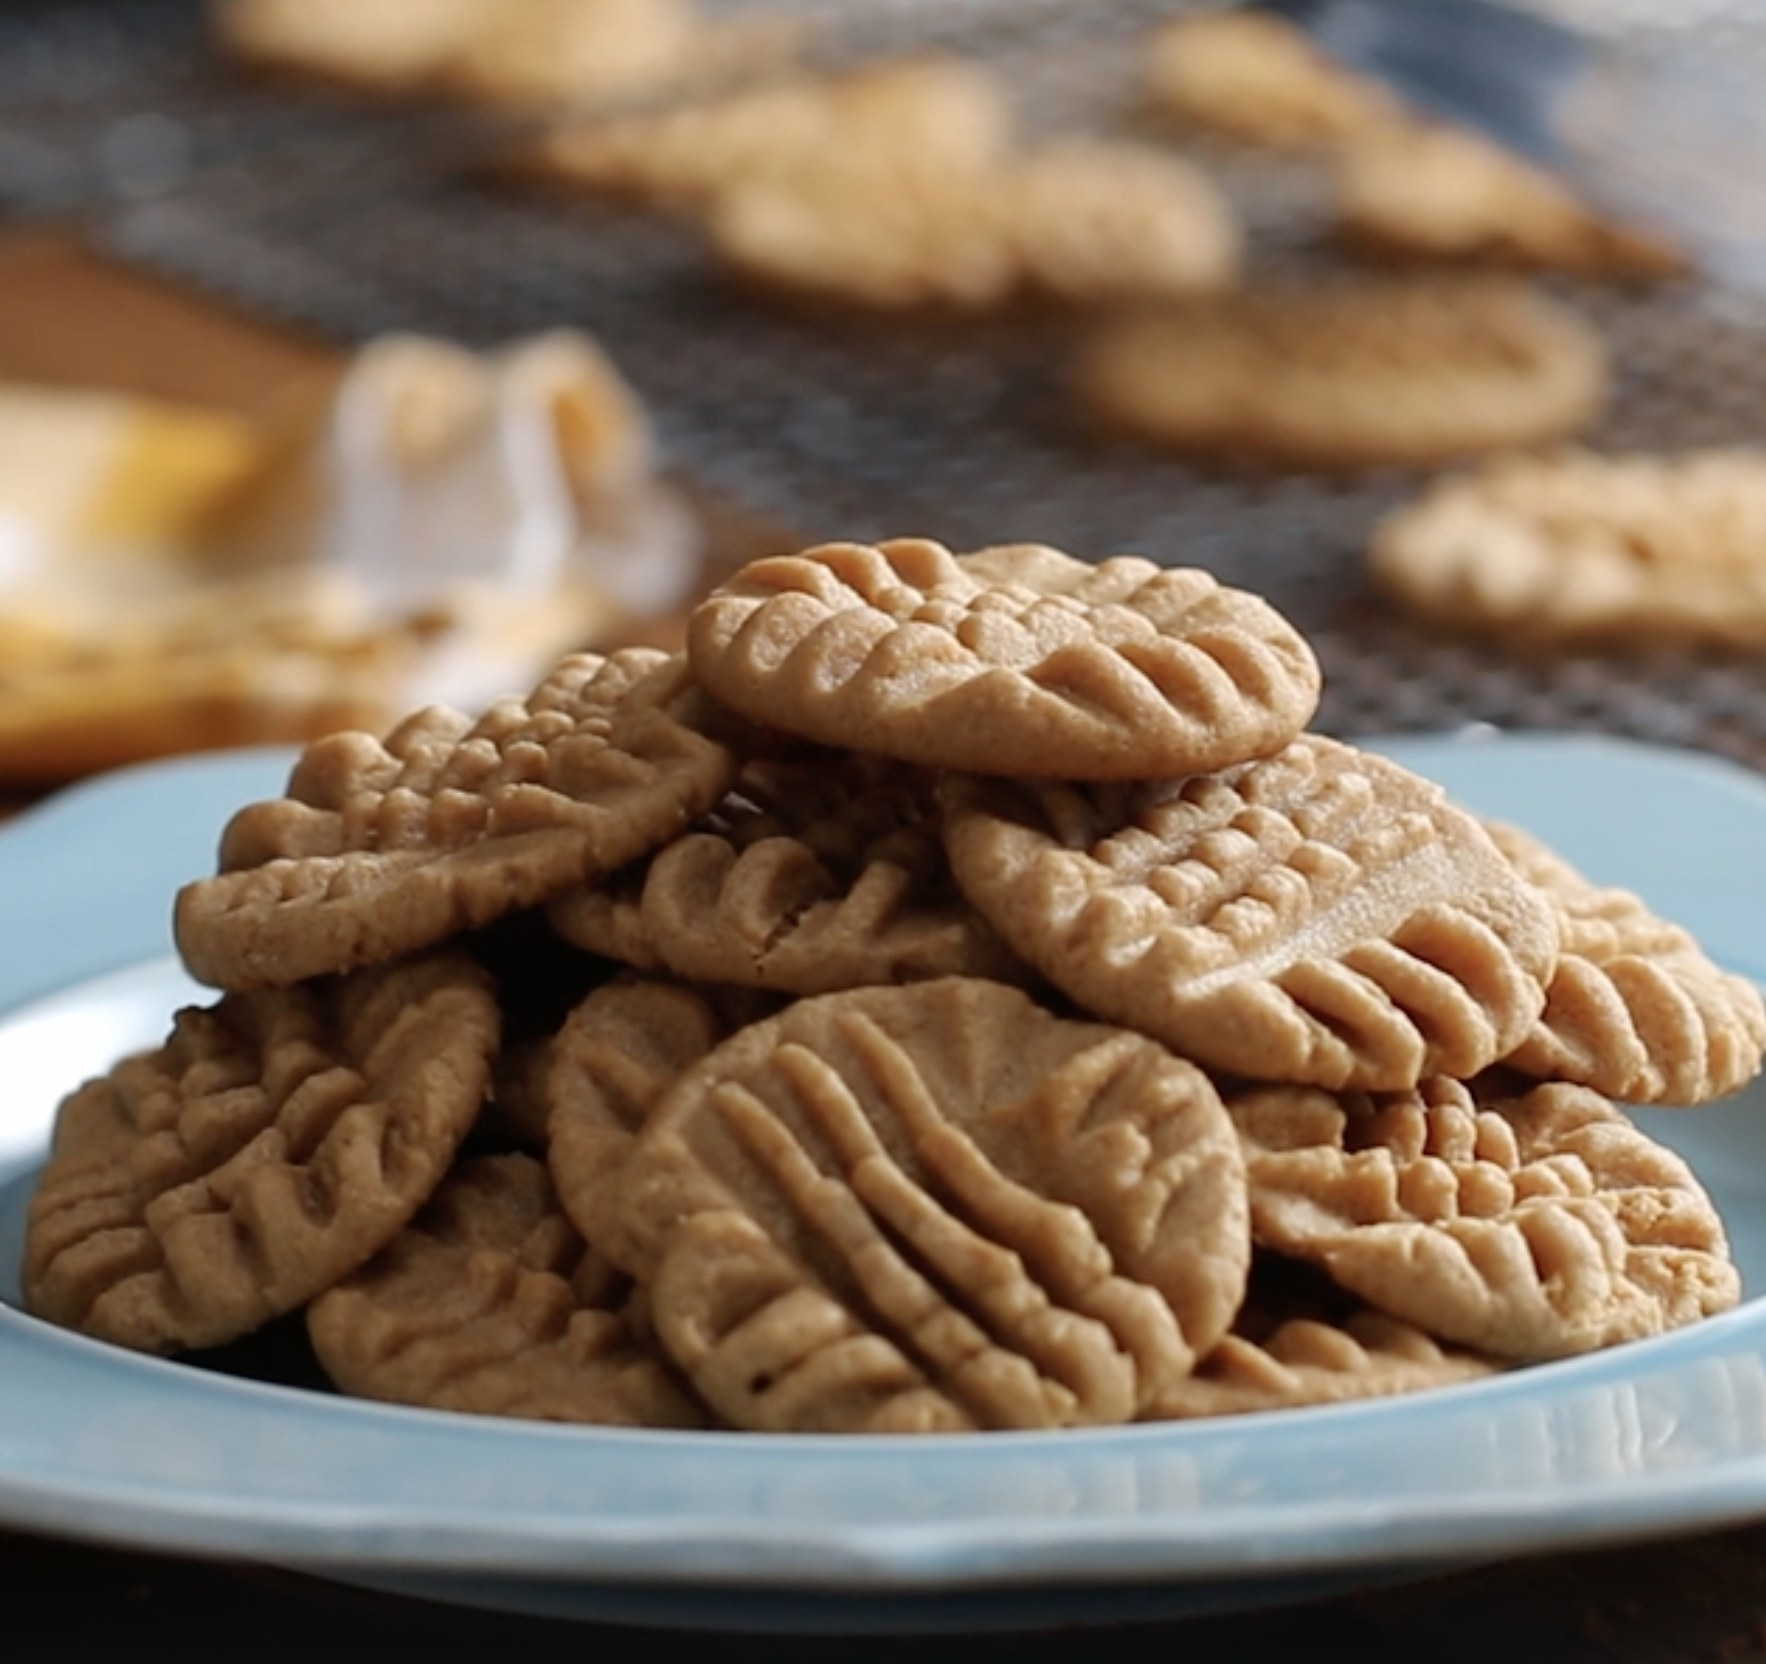 A plate with several peanut butter cookies